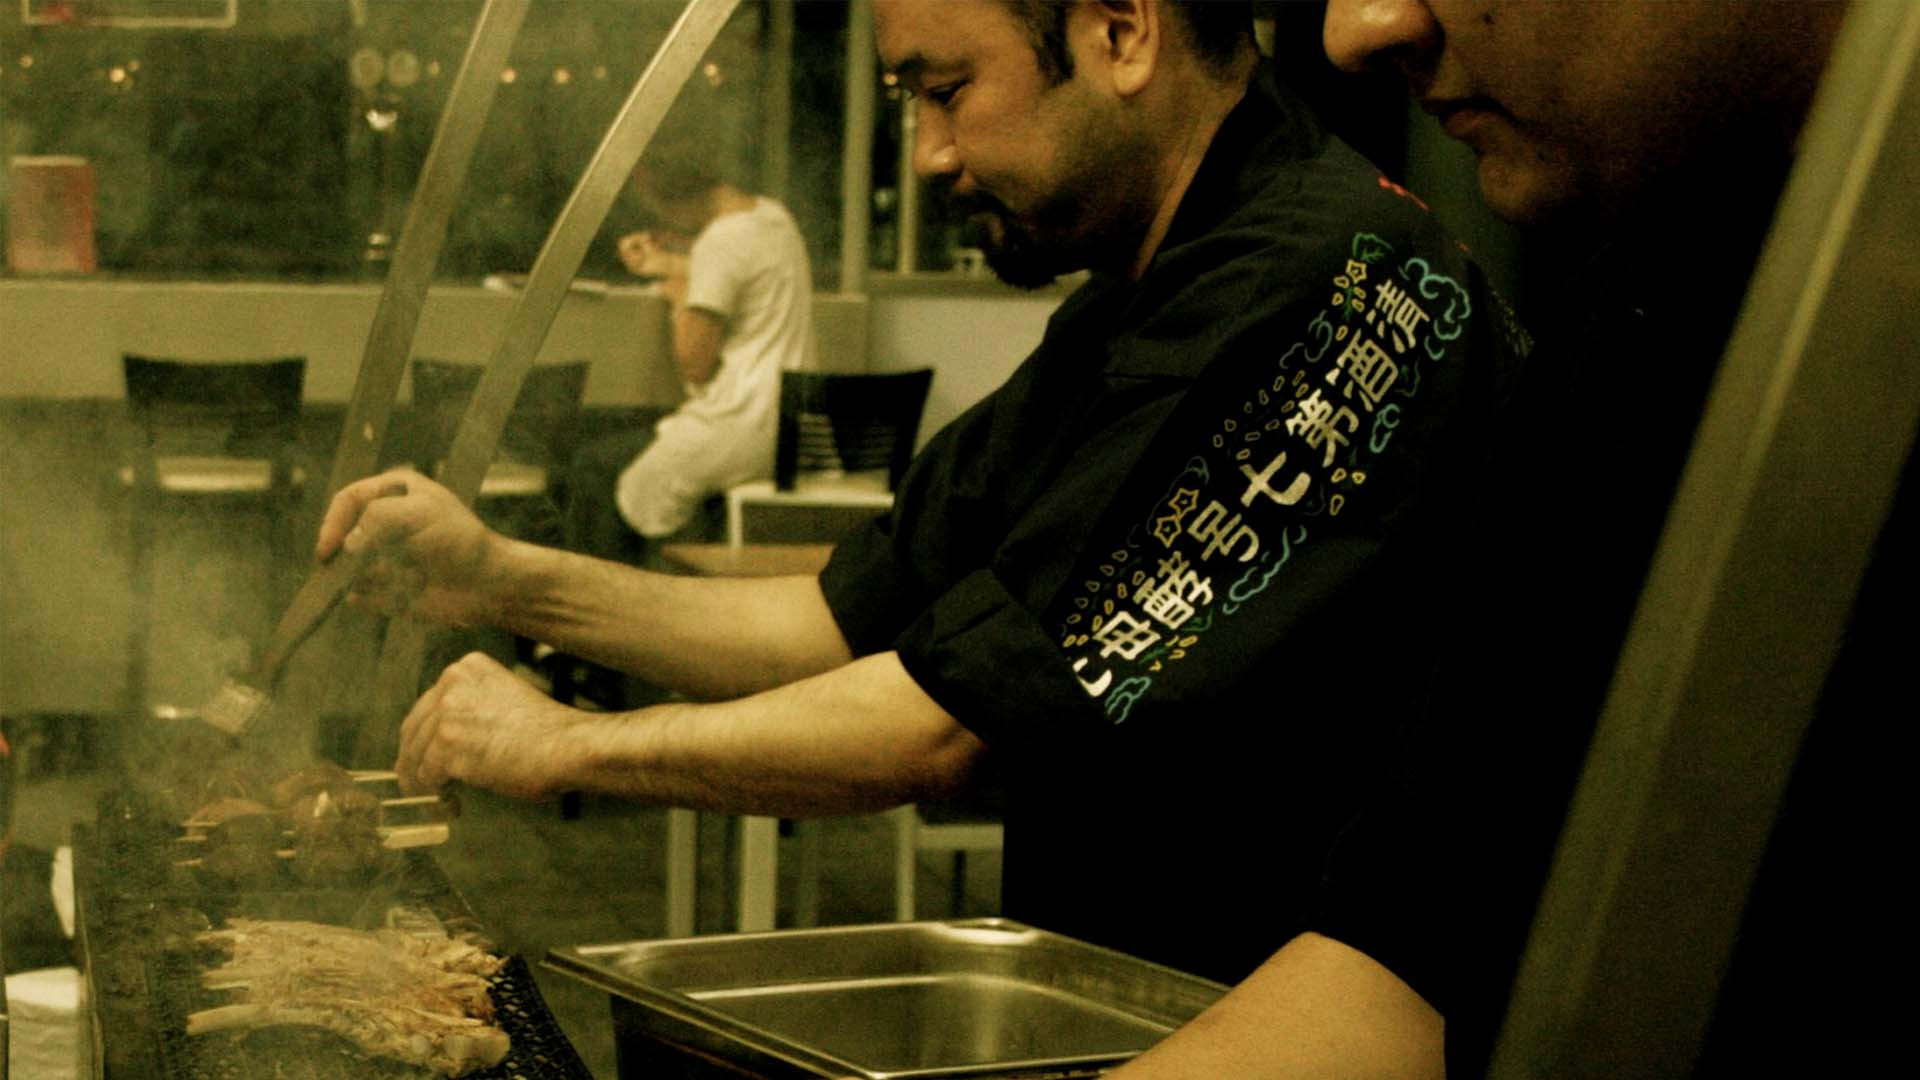 Chefs cooking at Bincho Yakitori, Brighton